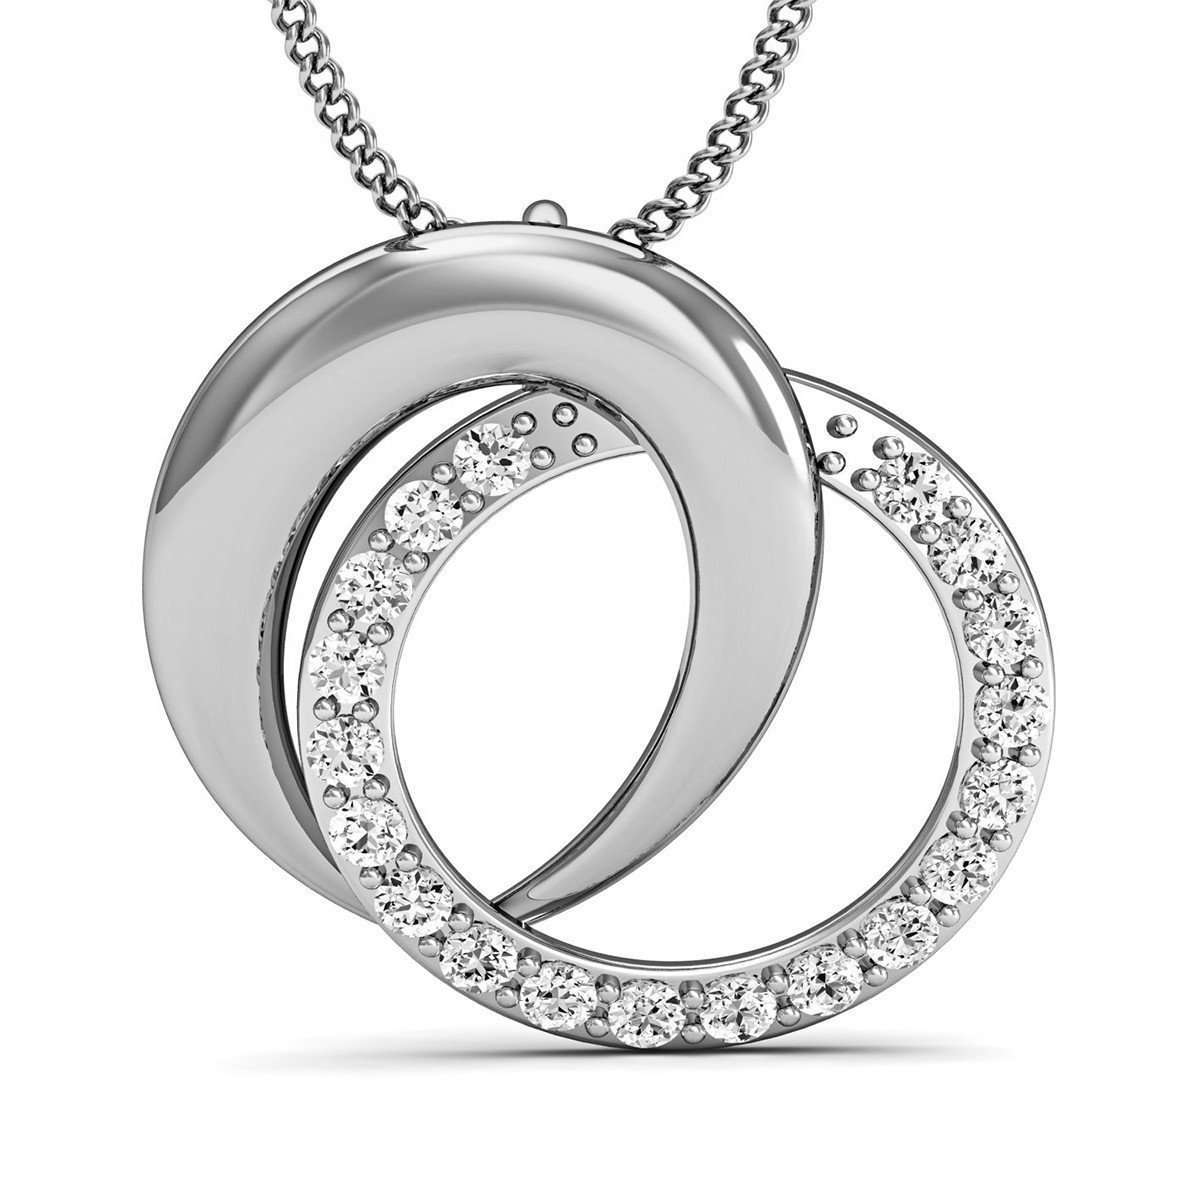 14kt White Gold Pave Pendant Handmade with Premium Quality Diamonds-Diamoire Jewels-JewelStreet US